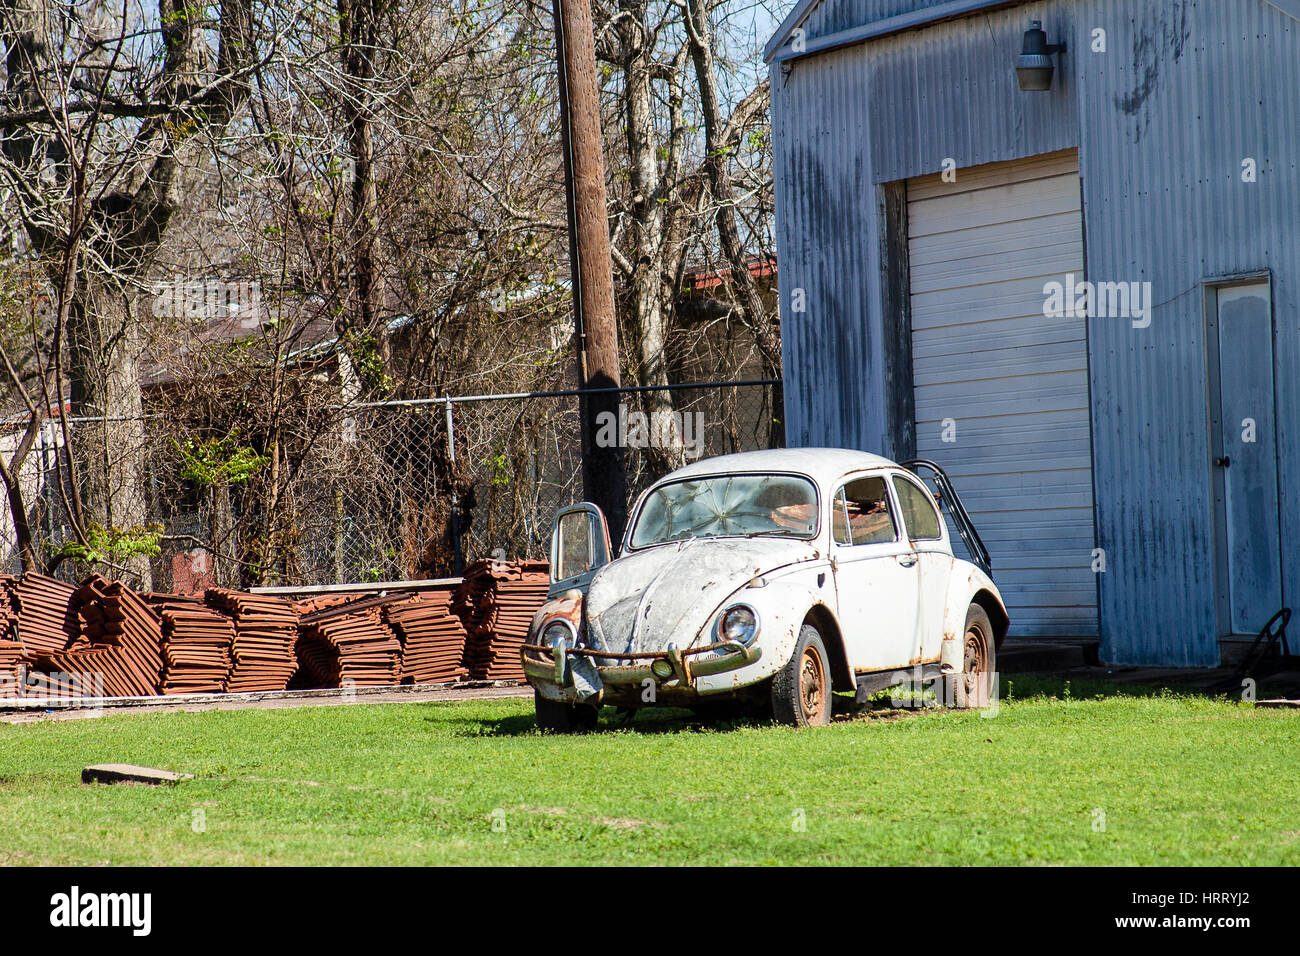 WHARTON, TEXAS, FEBRUARY 2017: An old Volkswagen Beetle in need of repair Stock Photo